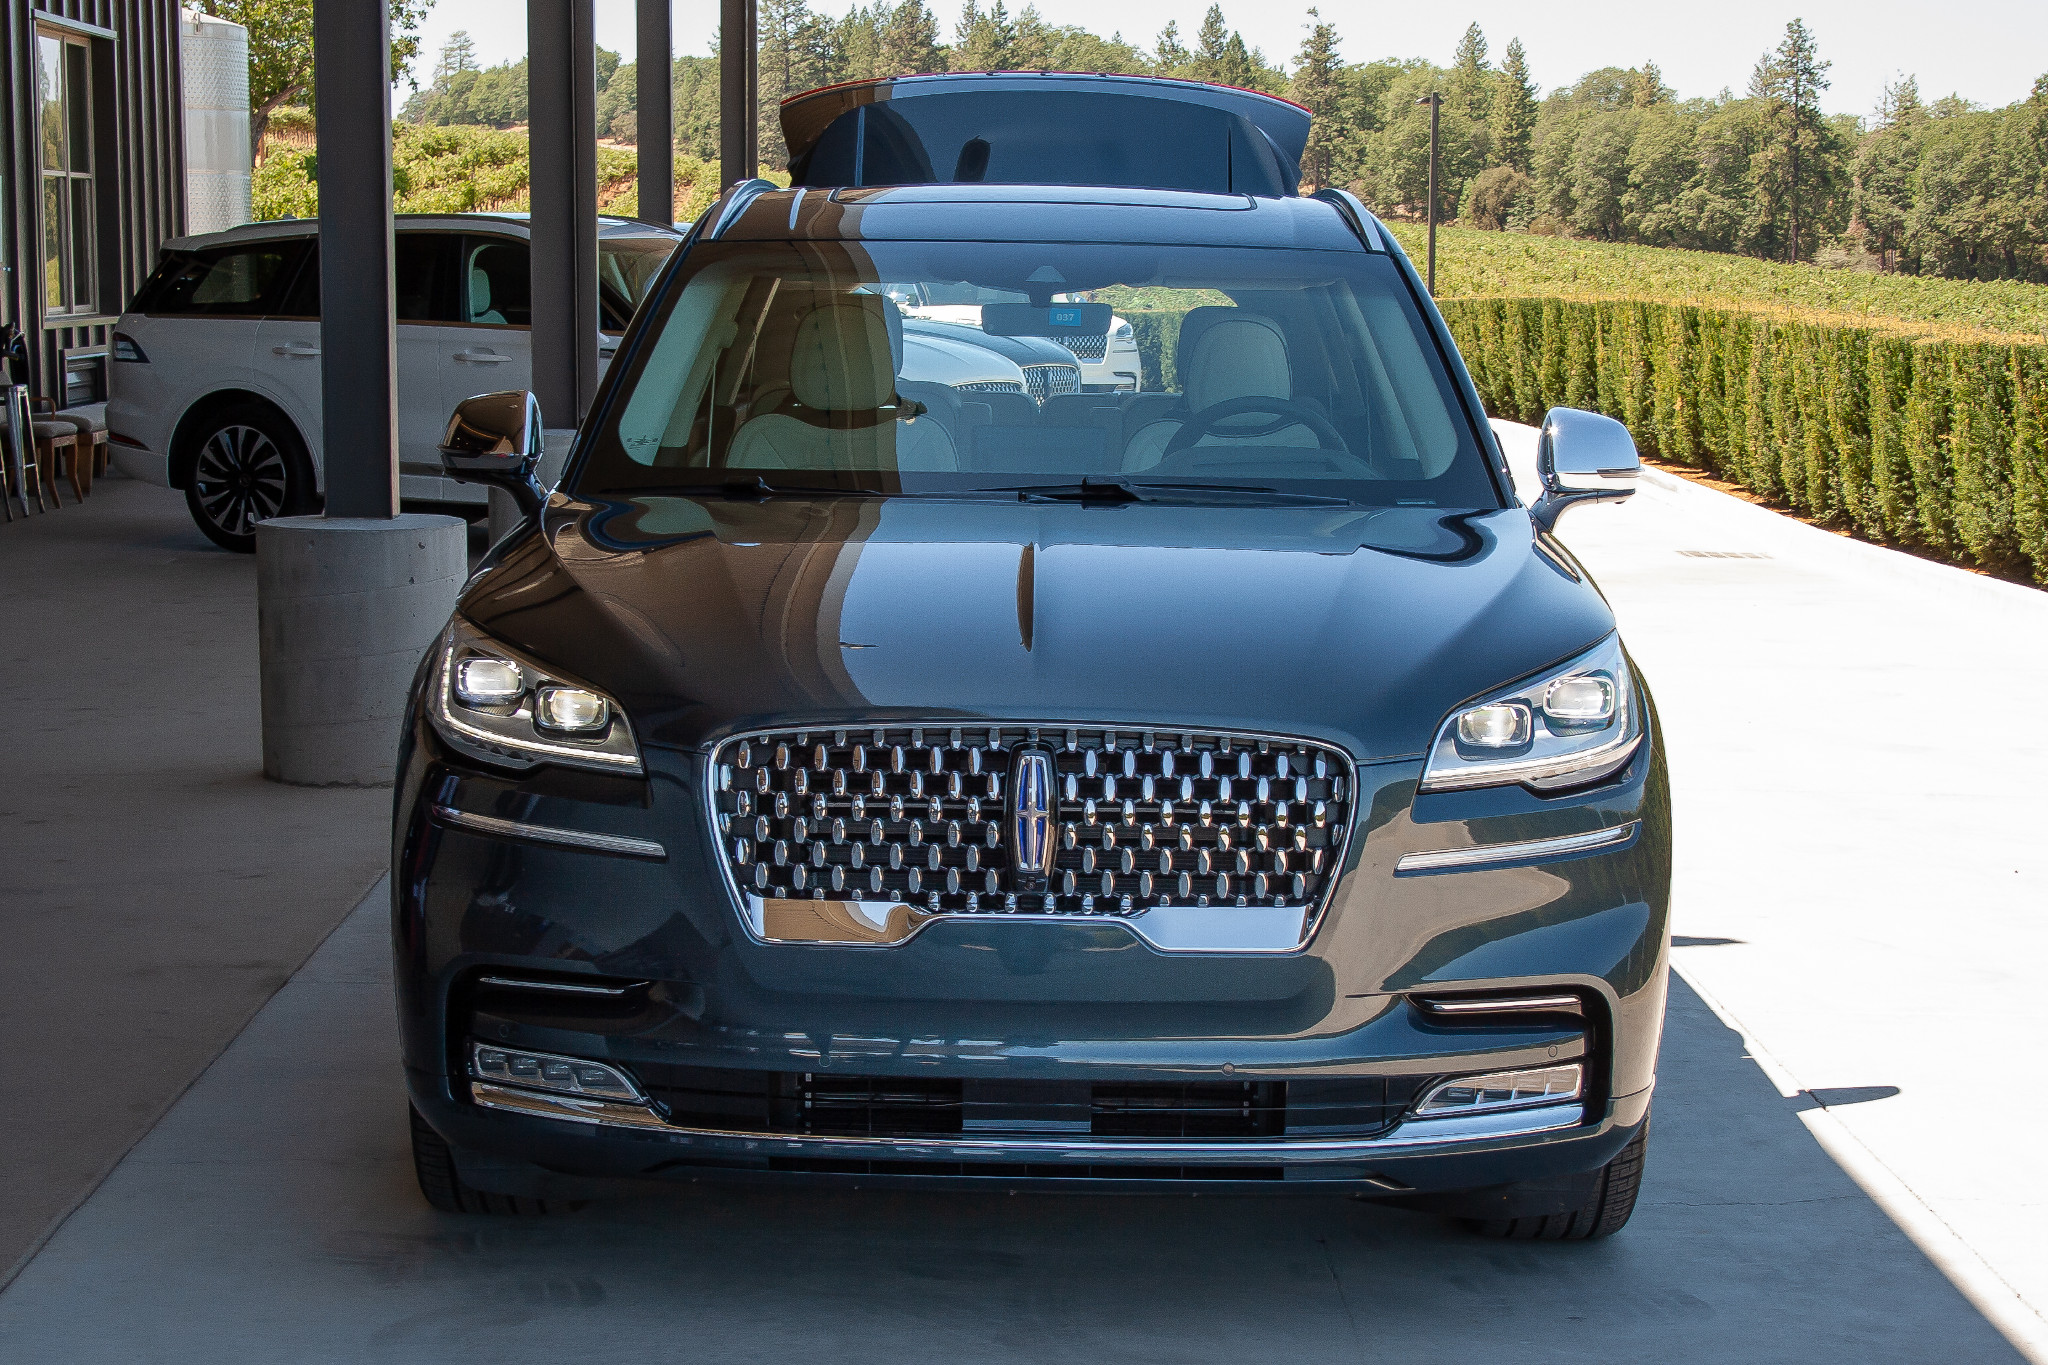 2020 Lincoln Aviator Plug-In Hybrid First Drive: Still Getting Its Wings